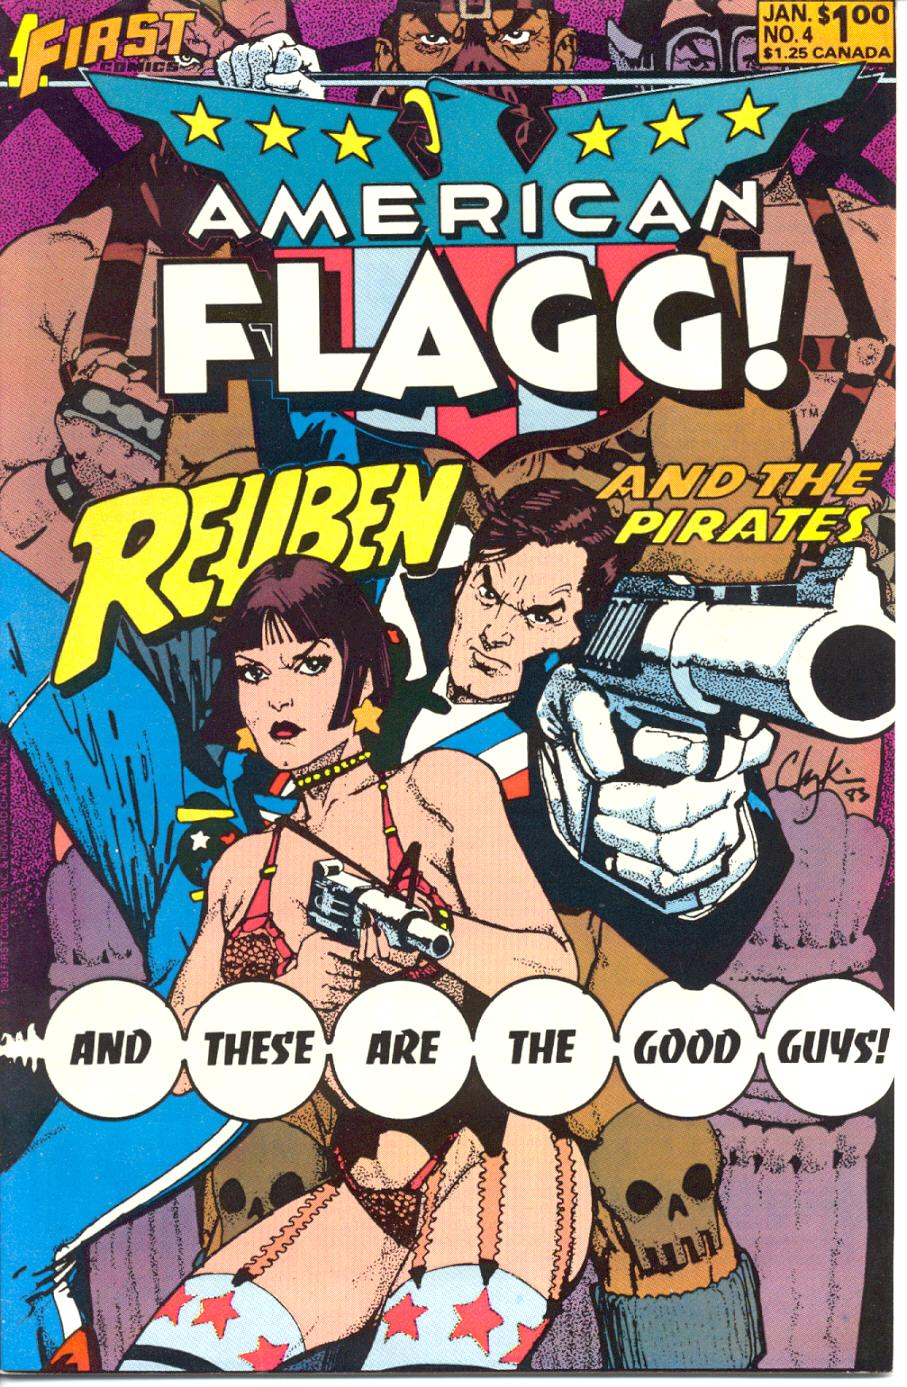 Read online American Flagg! comic -  Issue #4 - 1